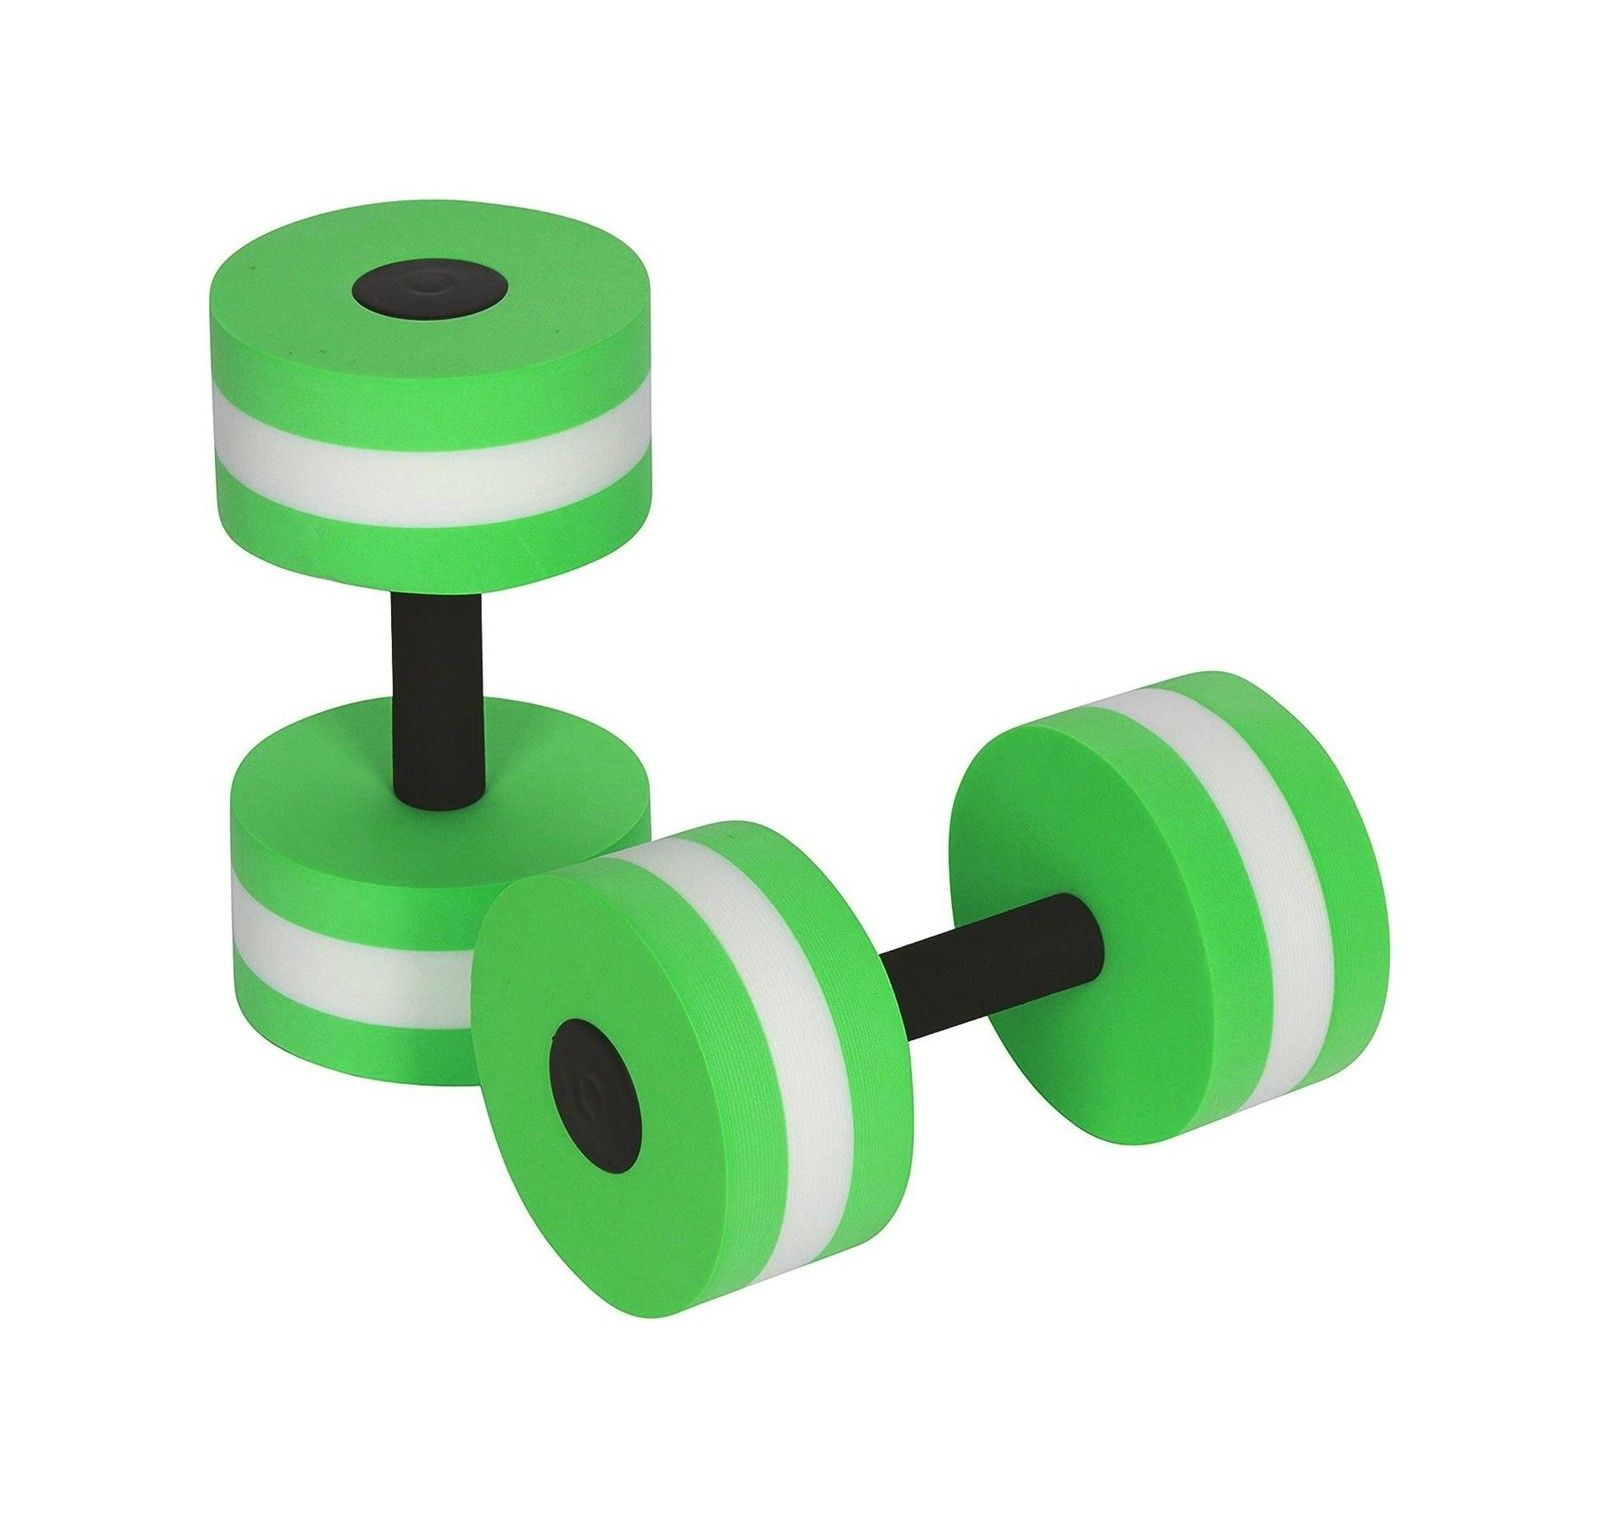 Dumbbell clipart workout gear. Zeyu sports aquatic exercise